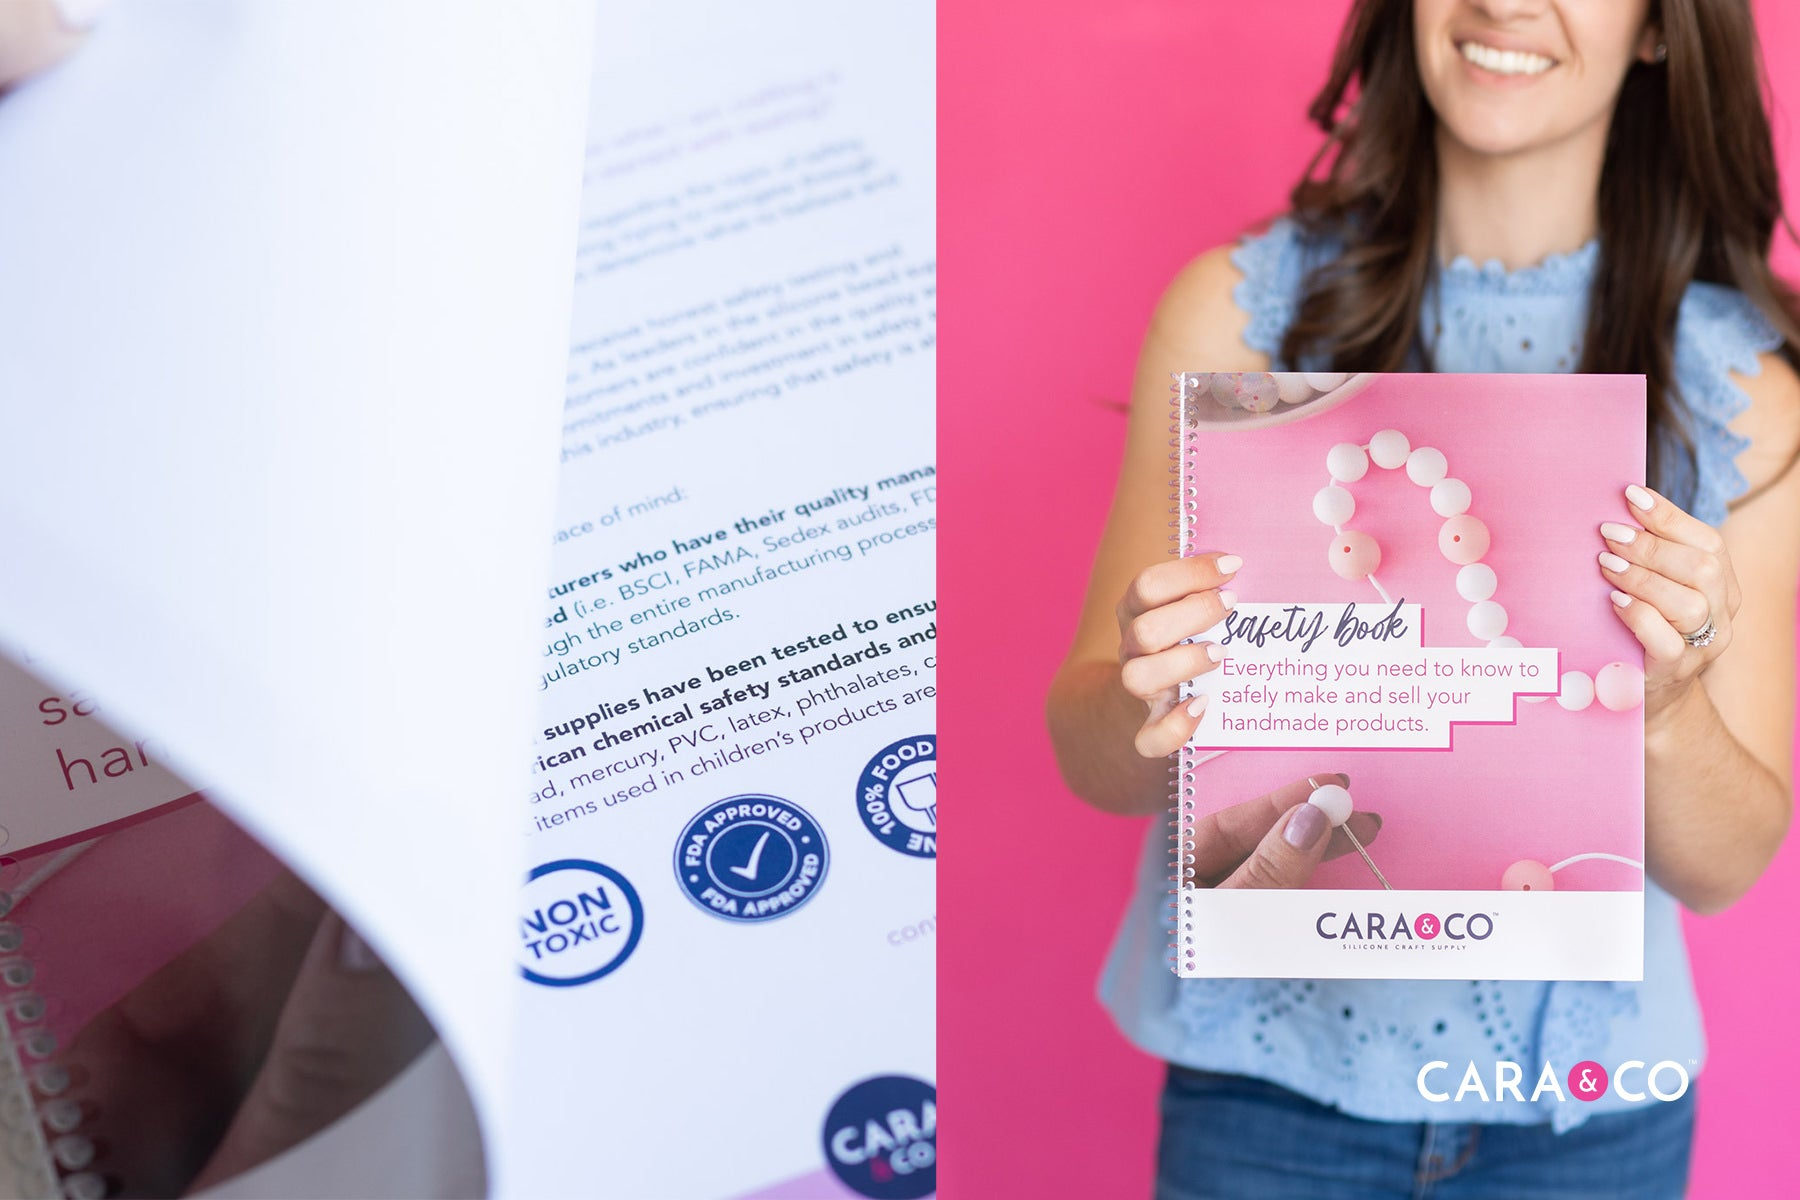 Safety e-book for your handmade business - Cara & Co